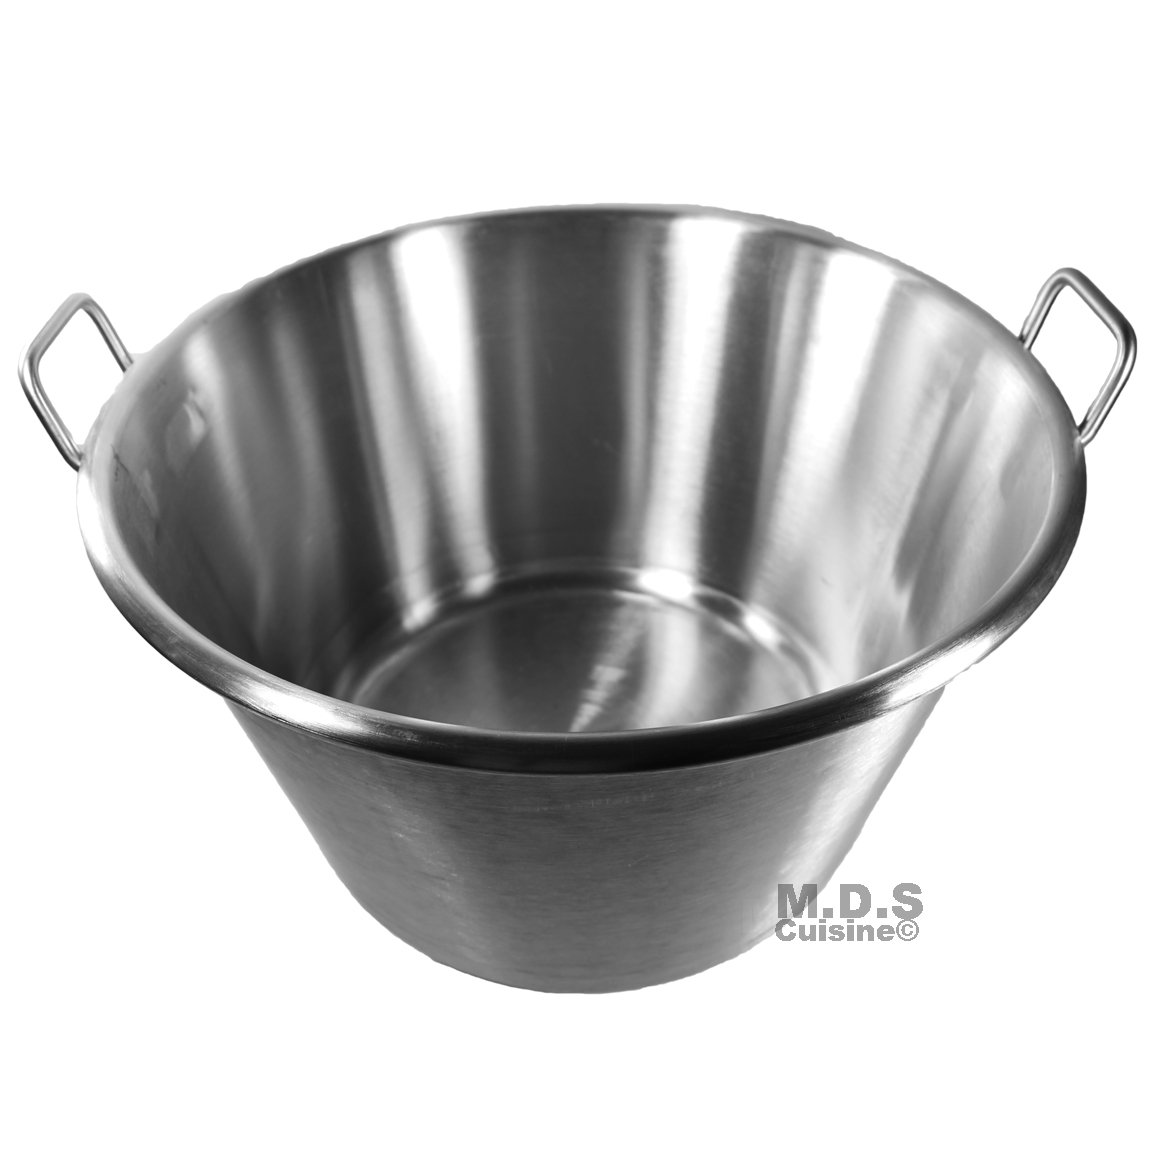 Large Cazo Stainless Steel 21'' Caso para Carnitas Gas Heavy Duty Wok Acero Inoxidable